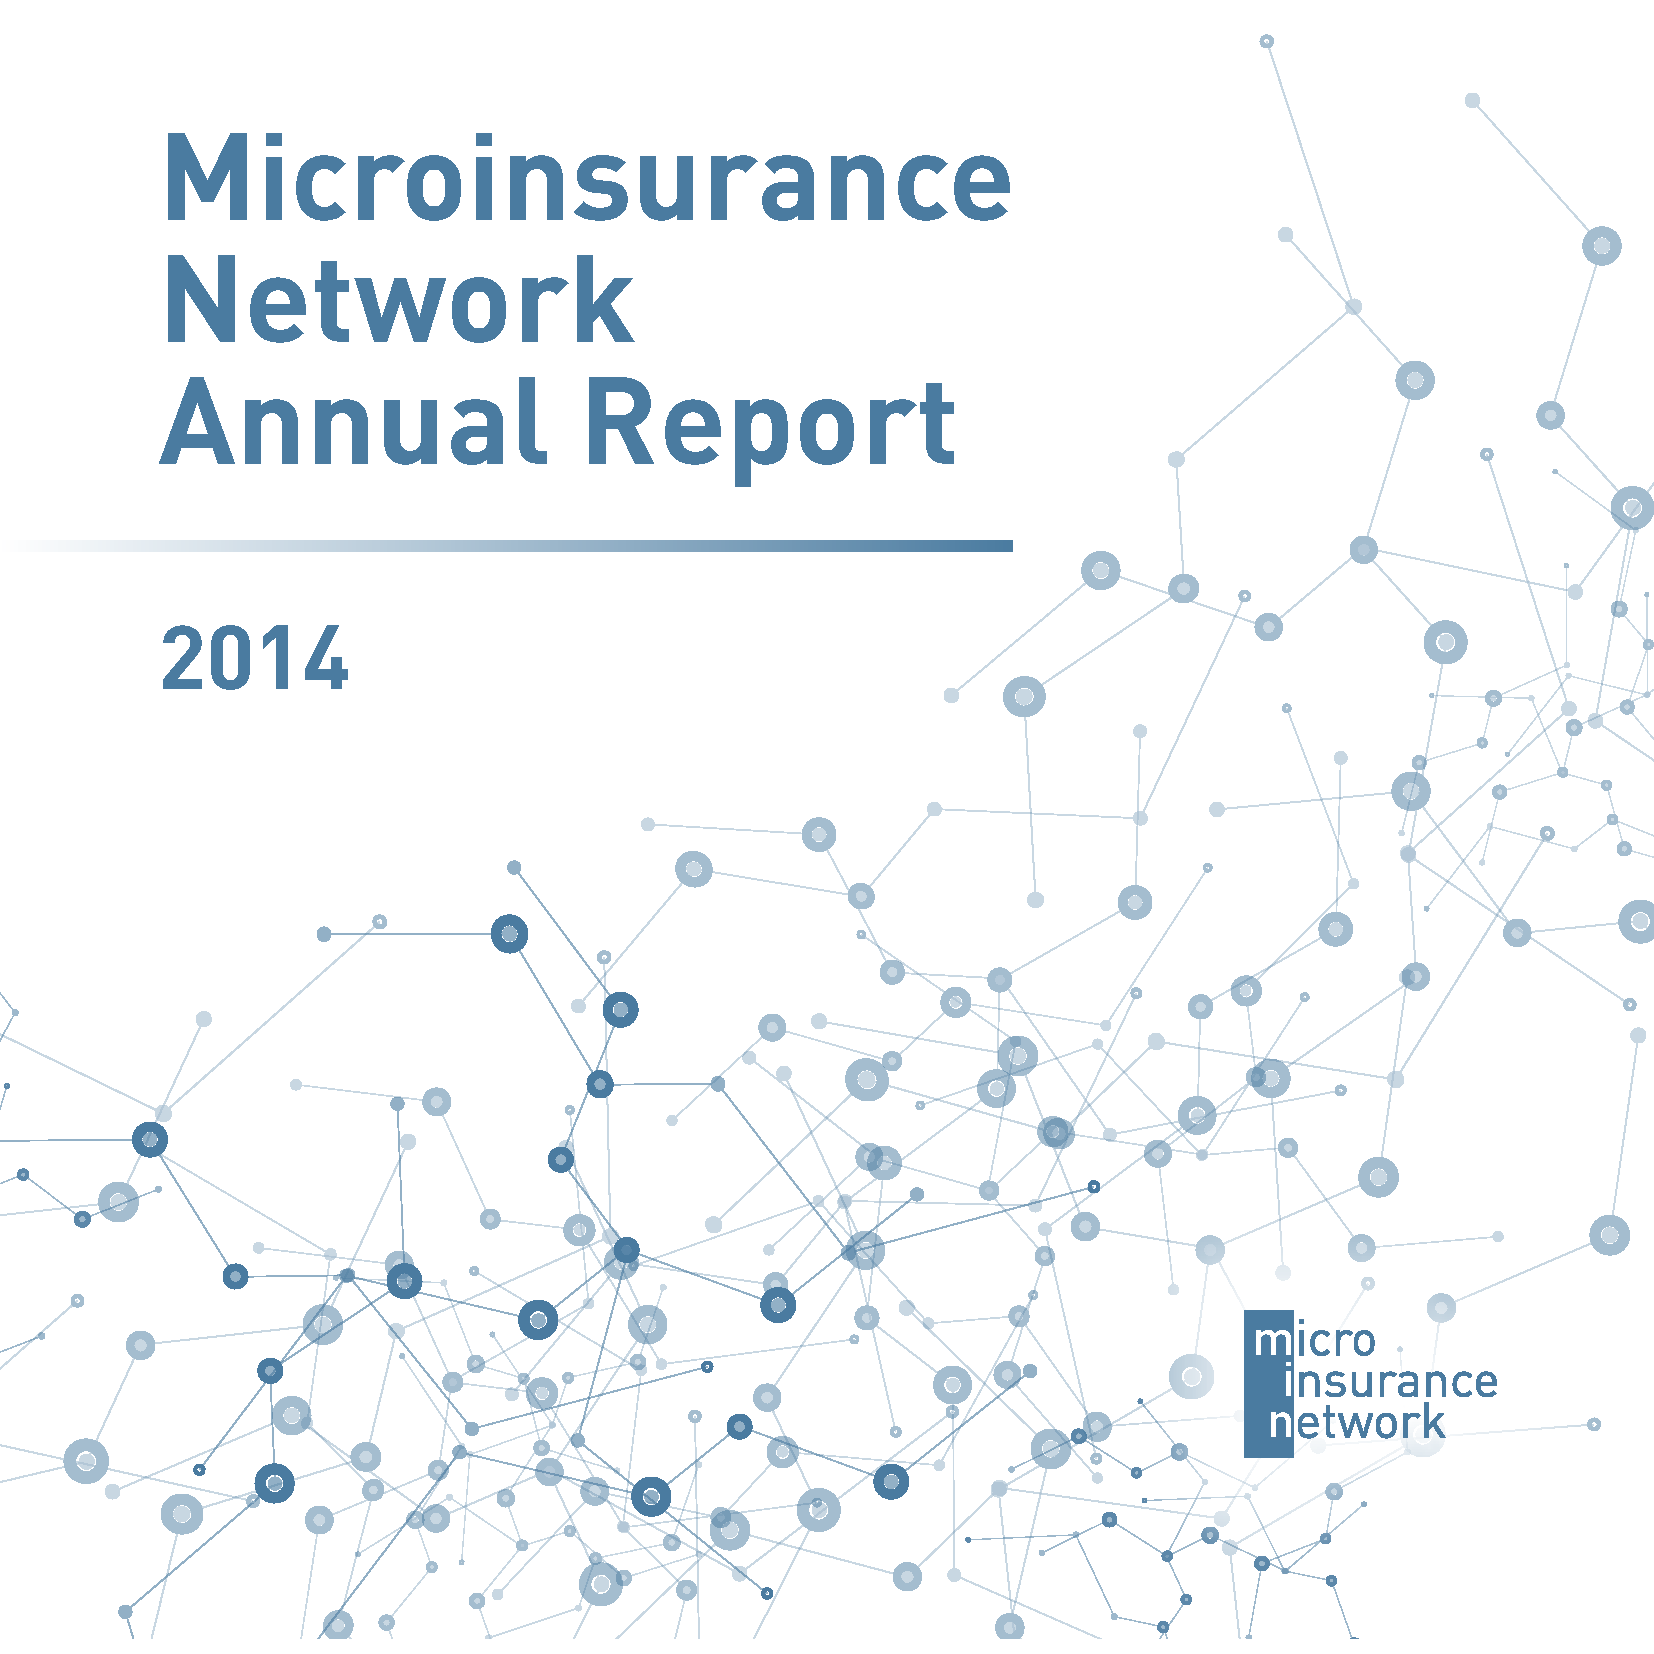 Microinsurance Network Annual Report 2014 LR-1.png